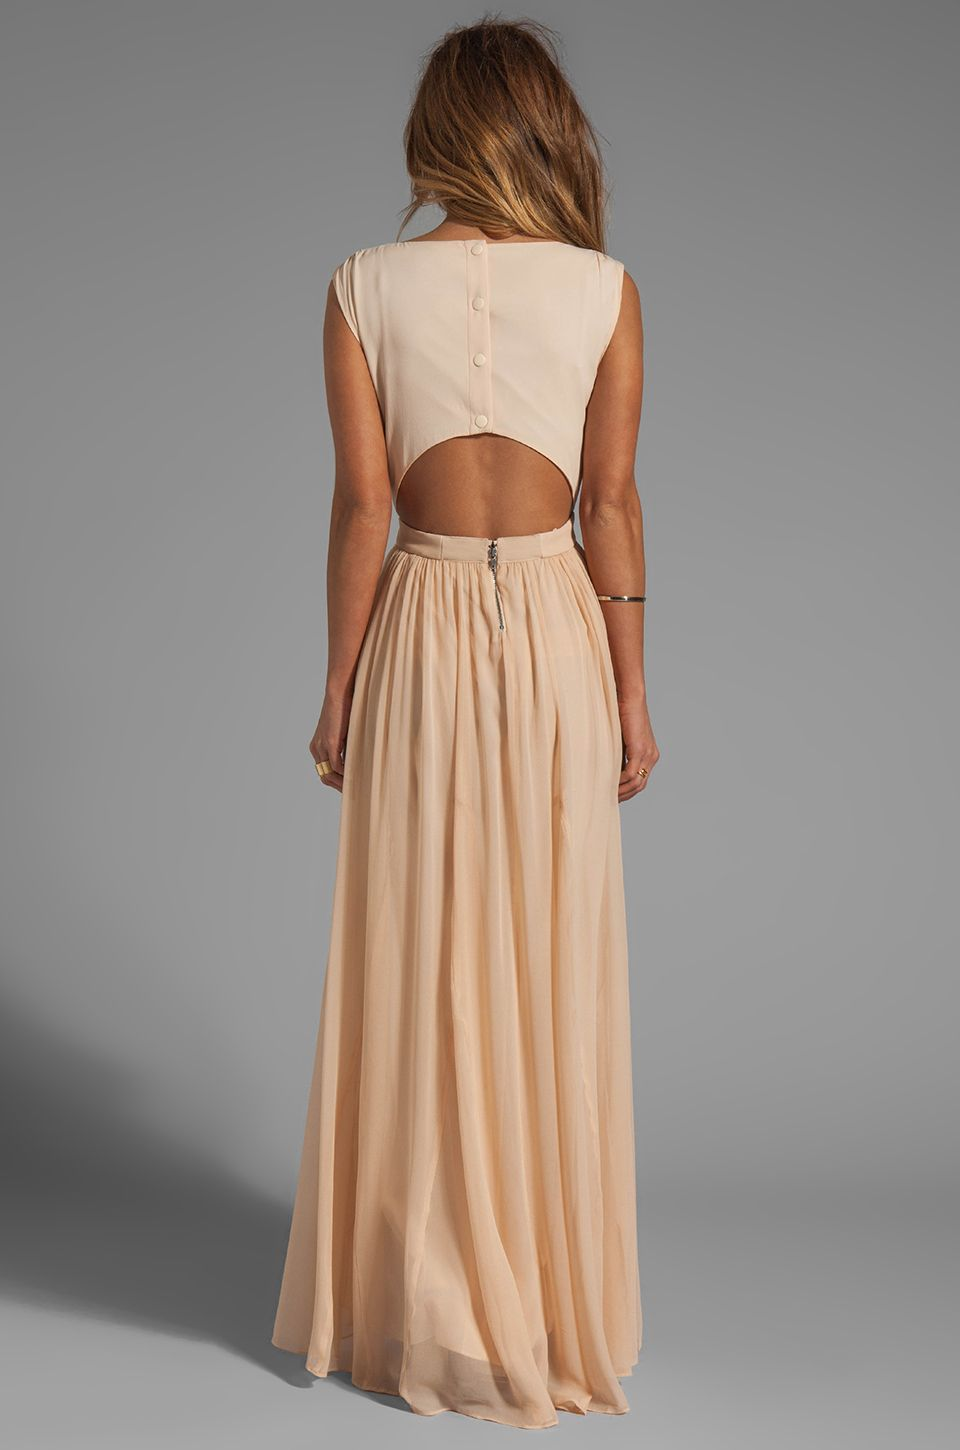 2d469110cb Alice + Olivia Triss Sleeveless Maxi Dress with Leather Trim in Almond Cream